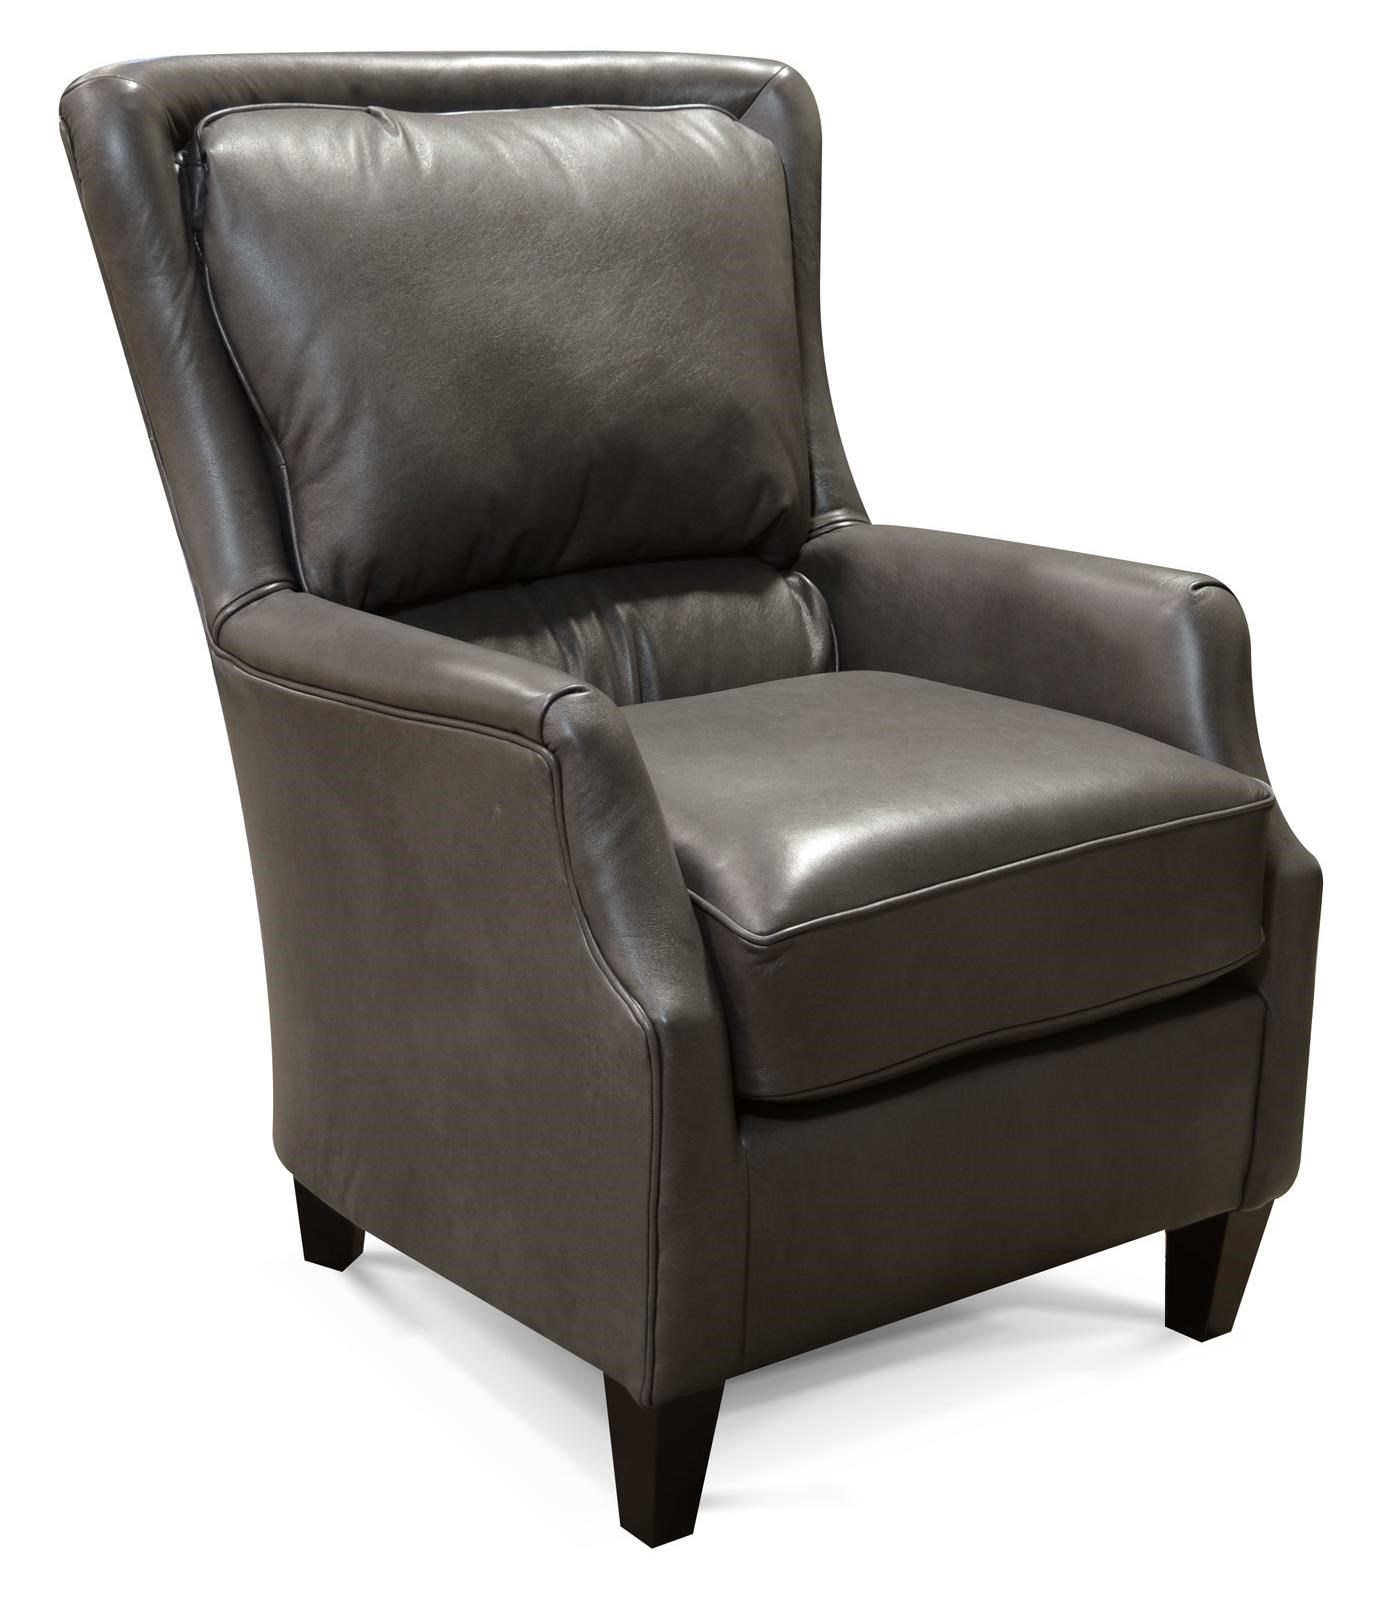 Wood Club Chair Louis Upholstered Club Chair With Tapered Wood Feet By England At Sheely S Furniture Appliance